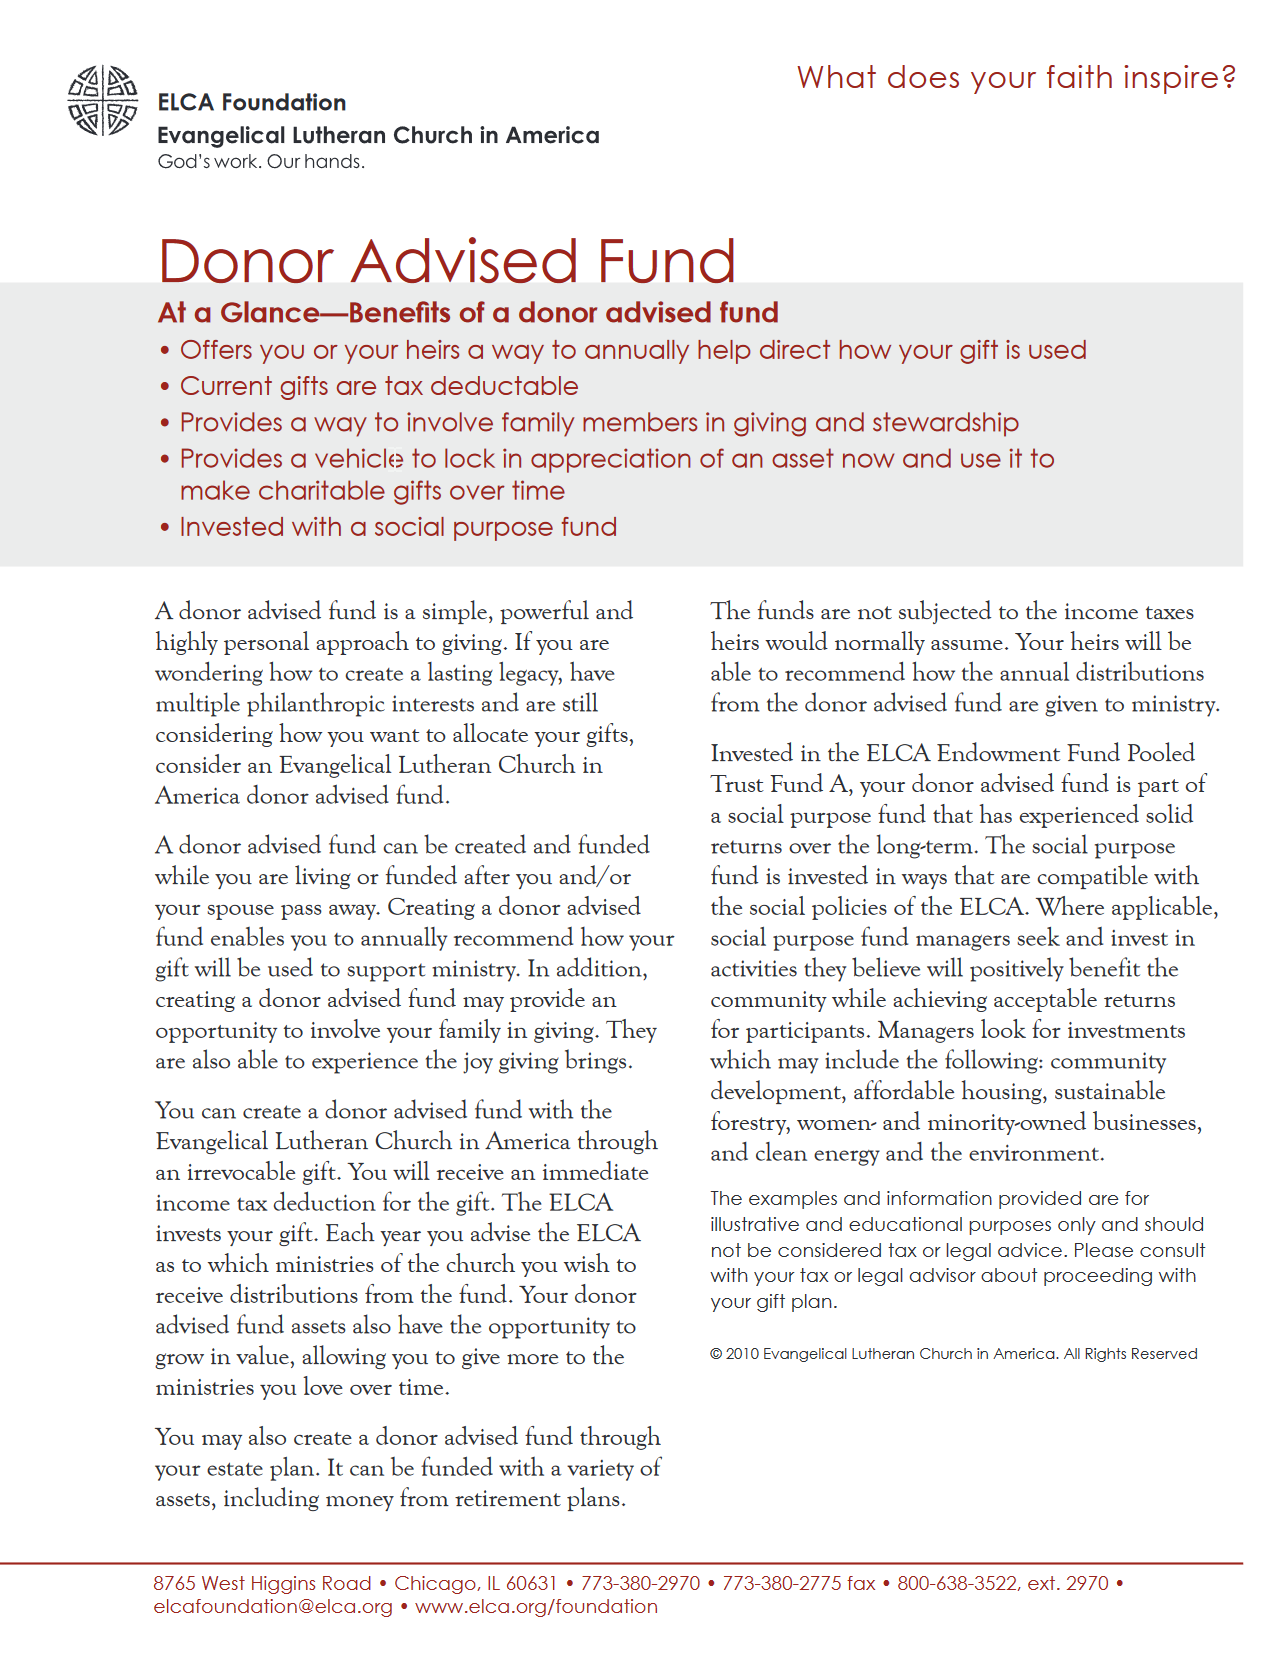 Donor_Advised_Fund